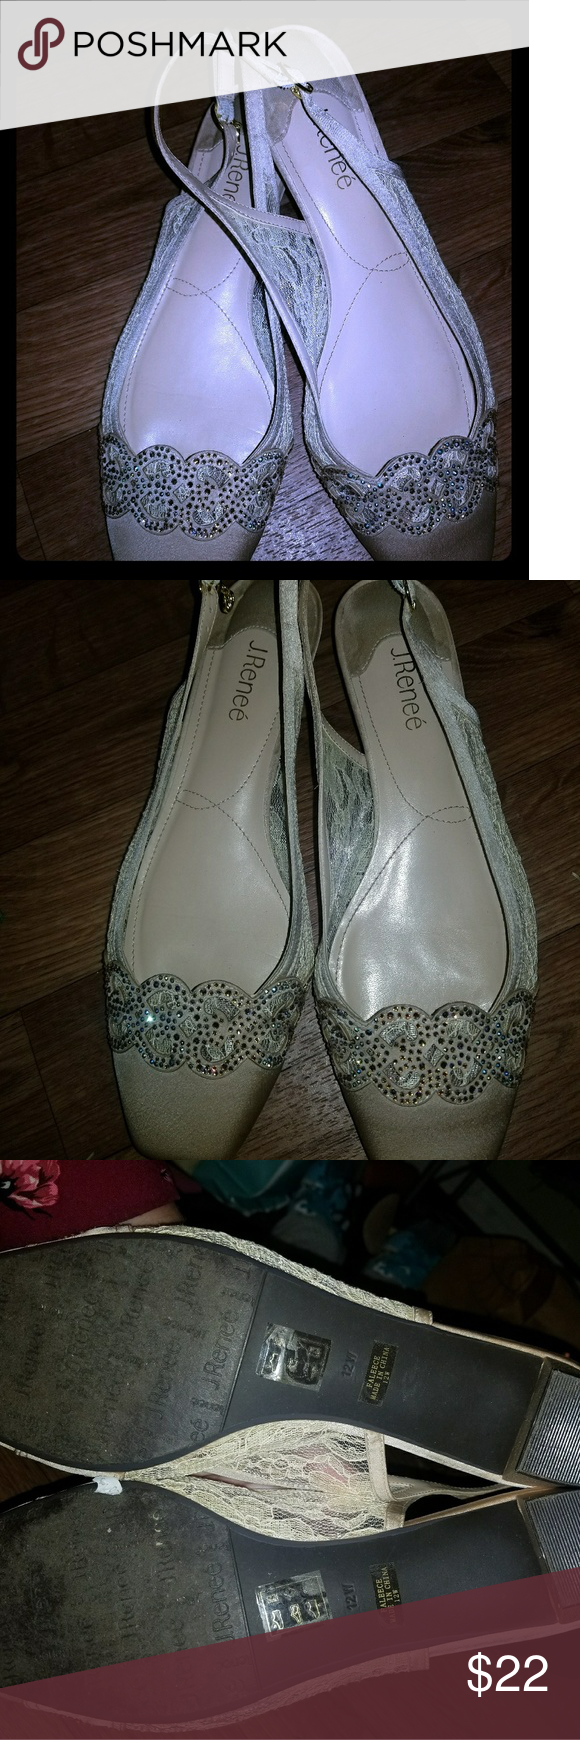 317cbc039b BRAND NEW J.RENEE Faleece Lace and Satin Slingback Faleece Lace and Satin  Slingback Block